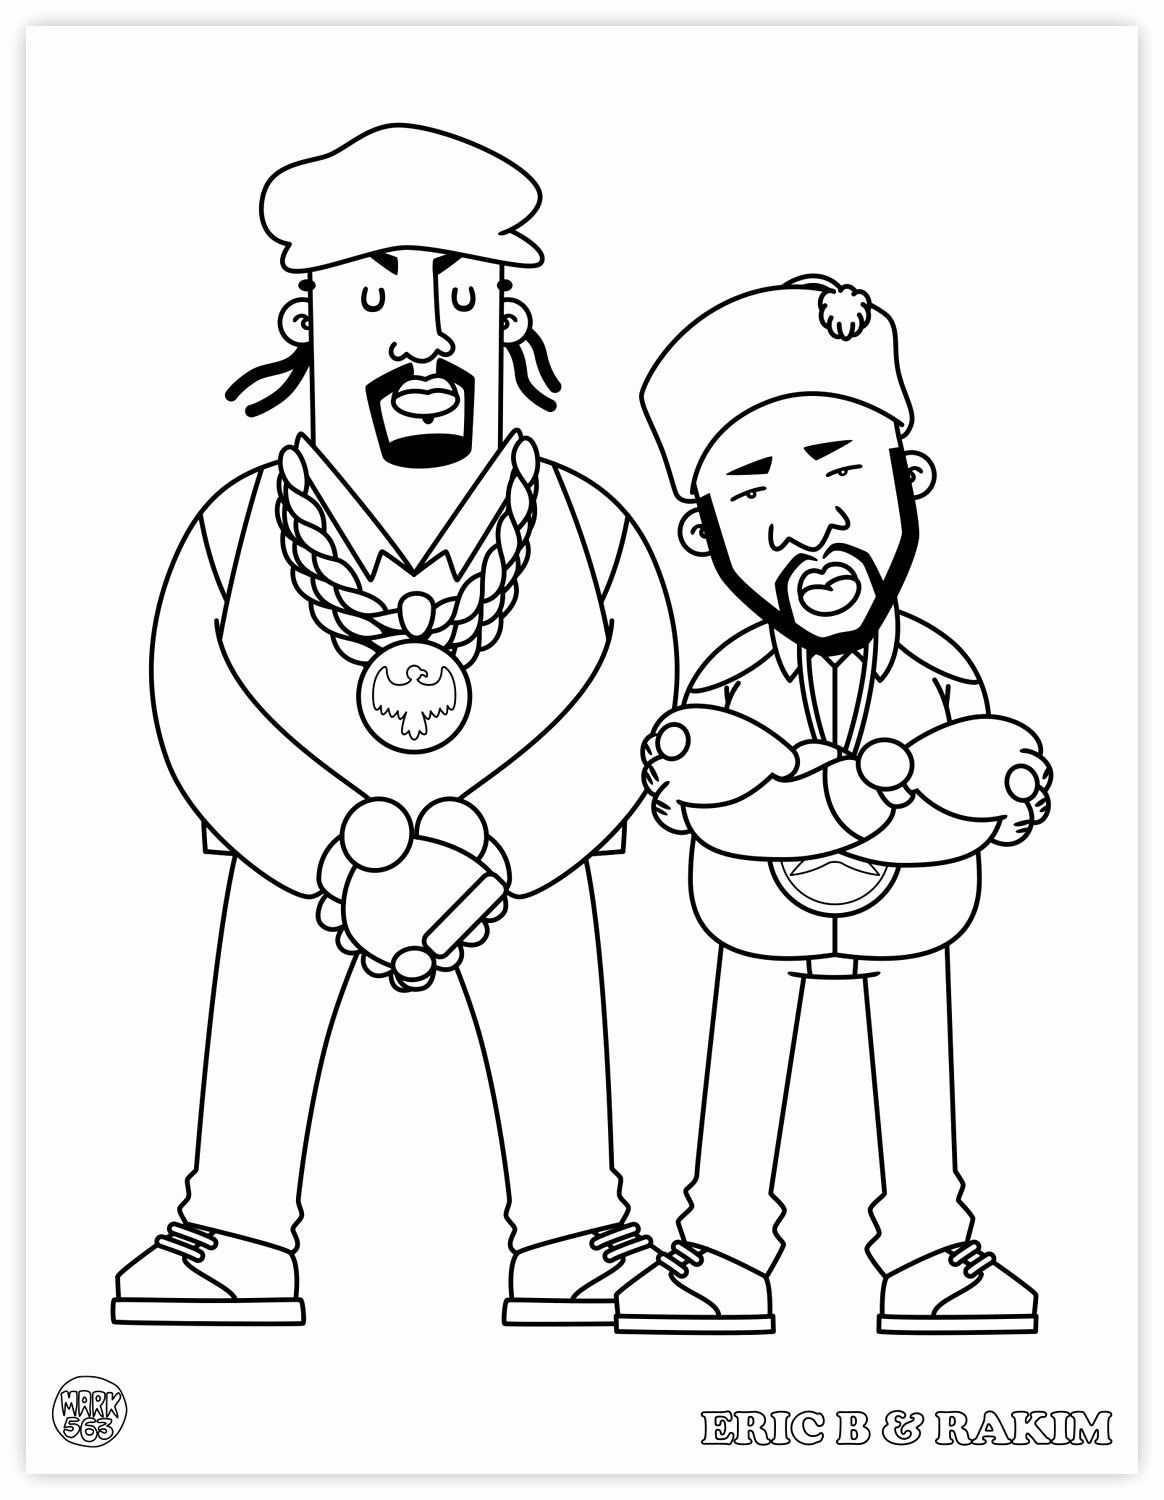 Hip Hop Coloring Book Awesome Dedicated Store Graffiti News Blog Archive Dedicated Coloring Books Kids Coloring Book Kids Coloring Books